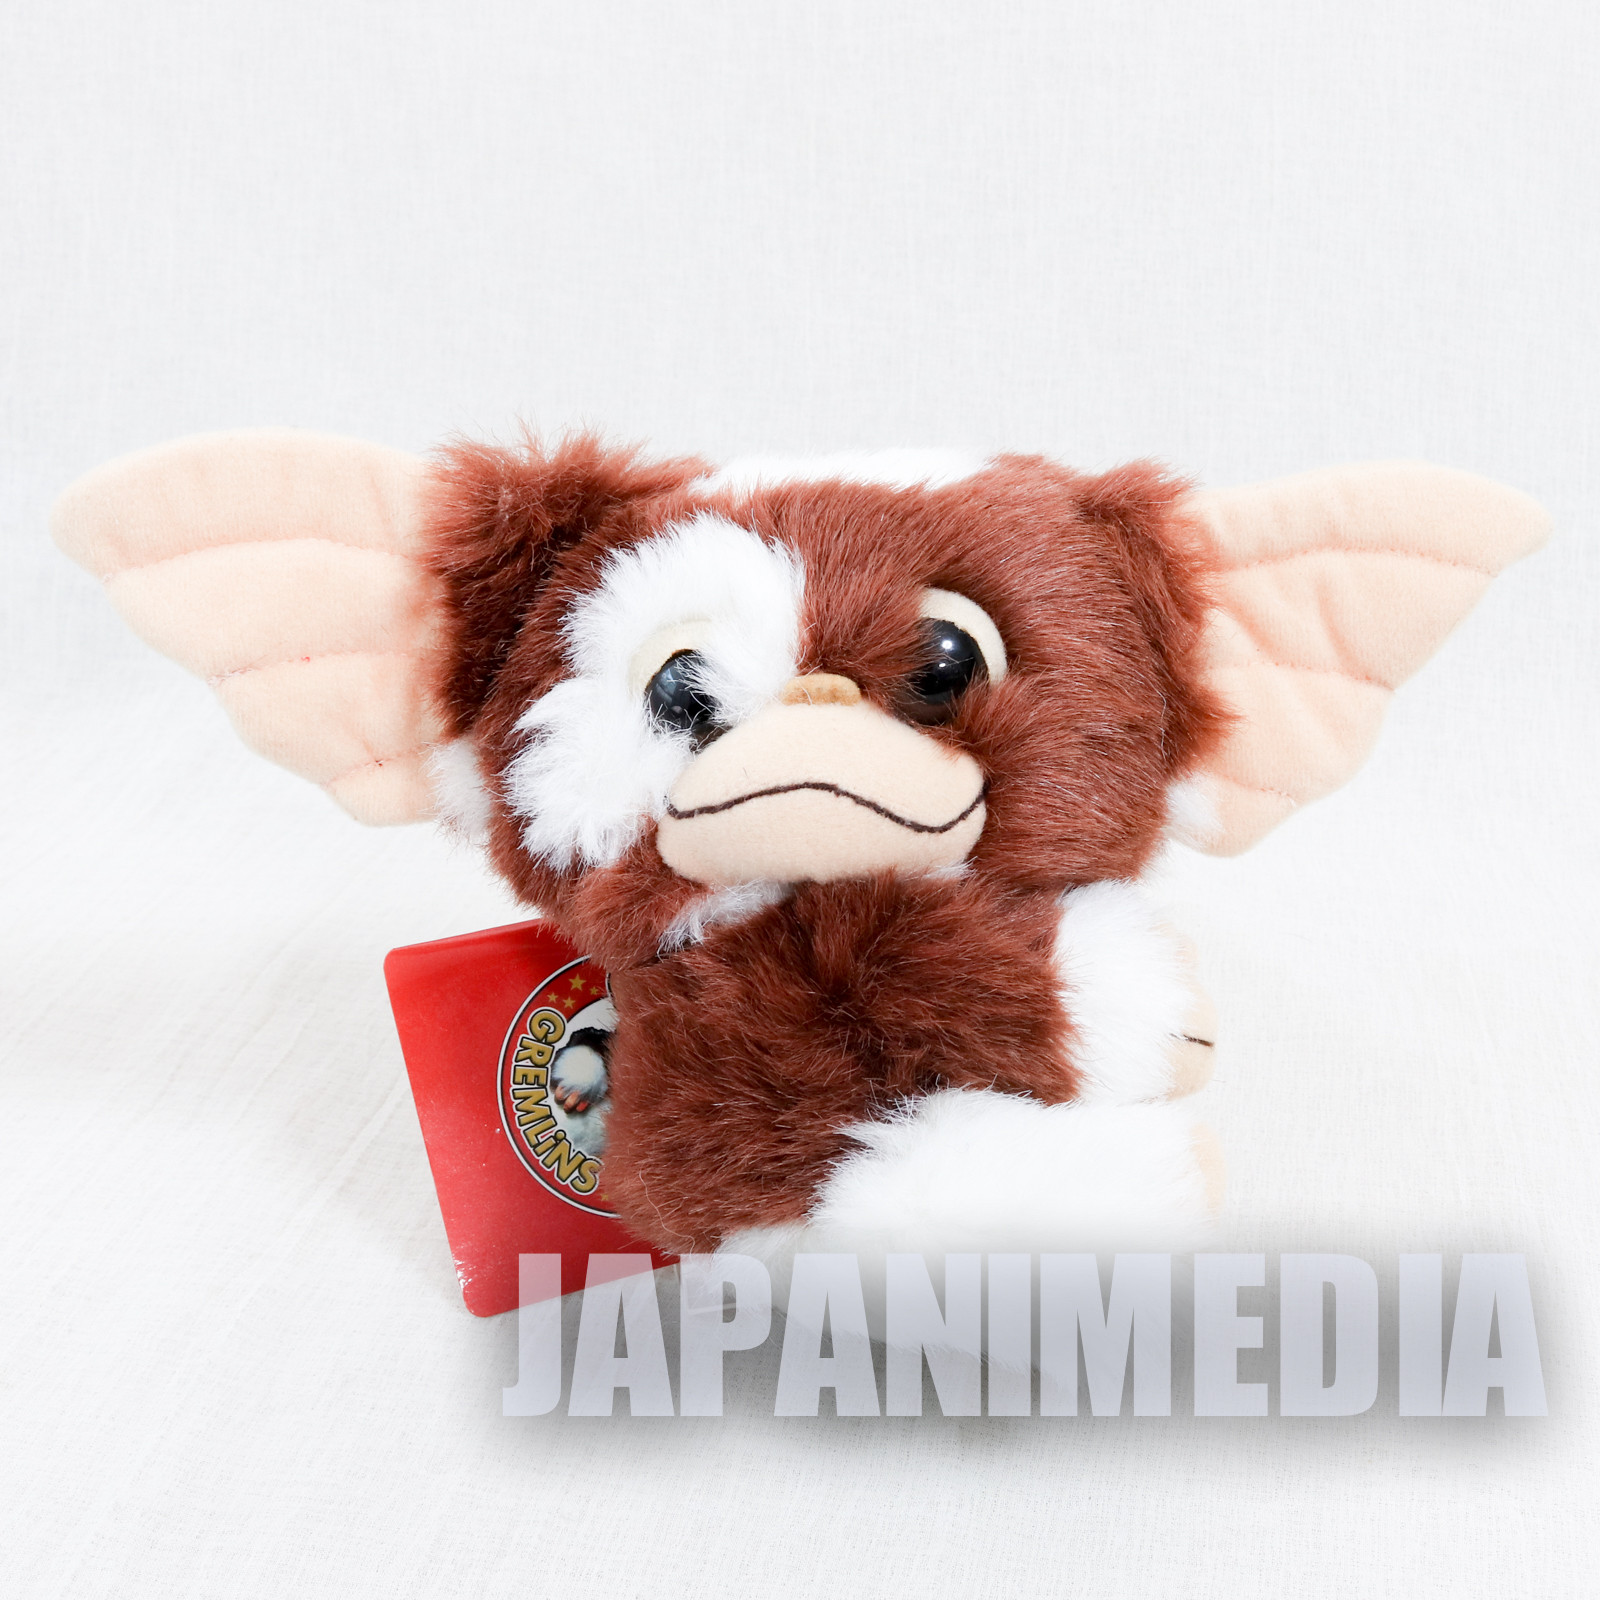 Gremlins 2 The New Batch Gizmo Plush Doll w/Magnet Hands Jun Planning JAPAN